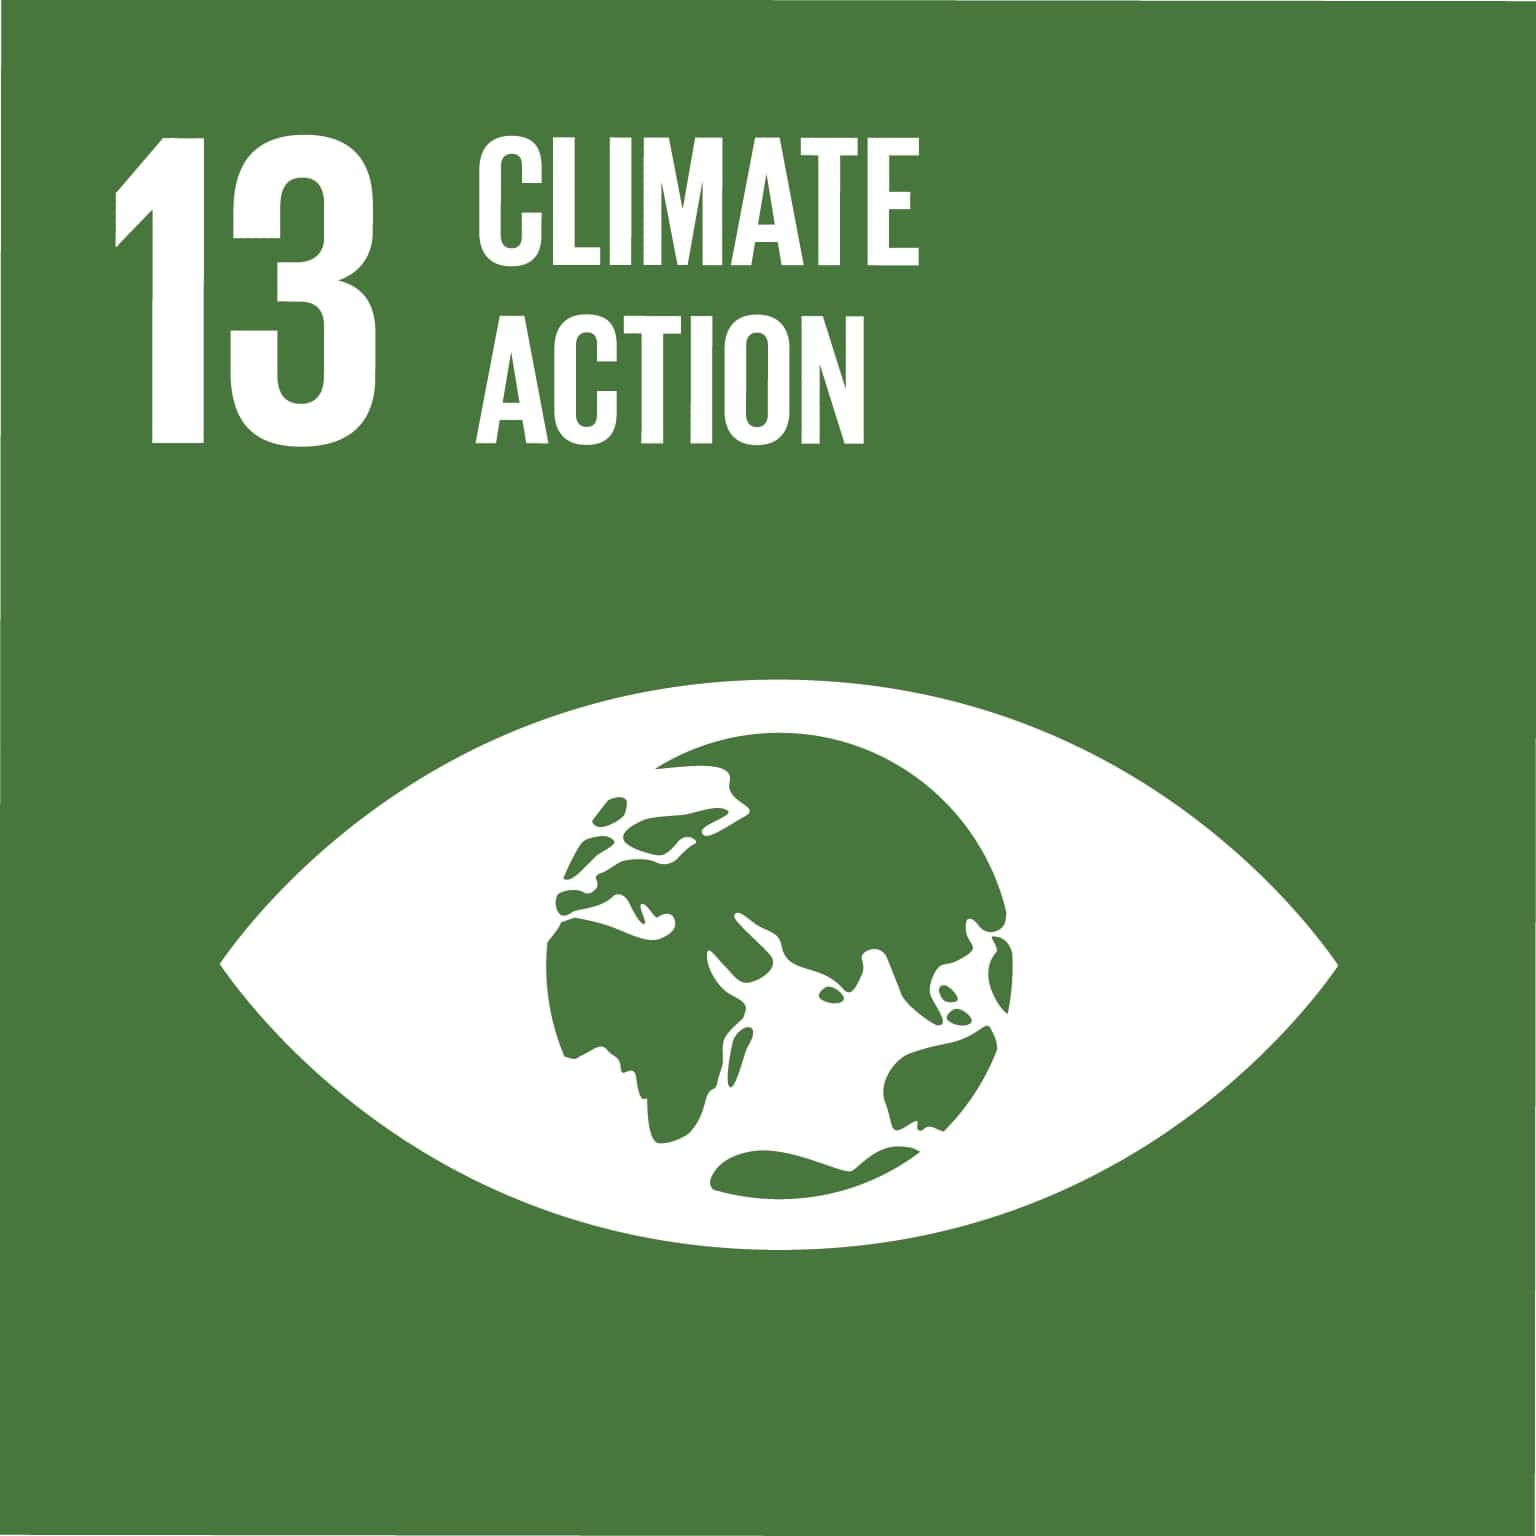 SUSTAINABLE DEVELOPMENT GOAL 13: Take urgent action to combat climate change and its impacts